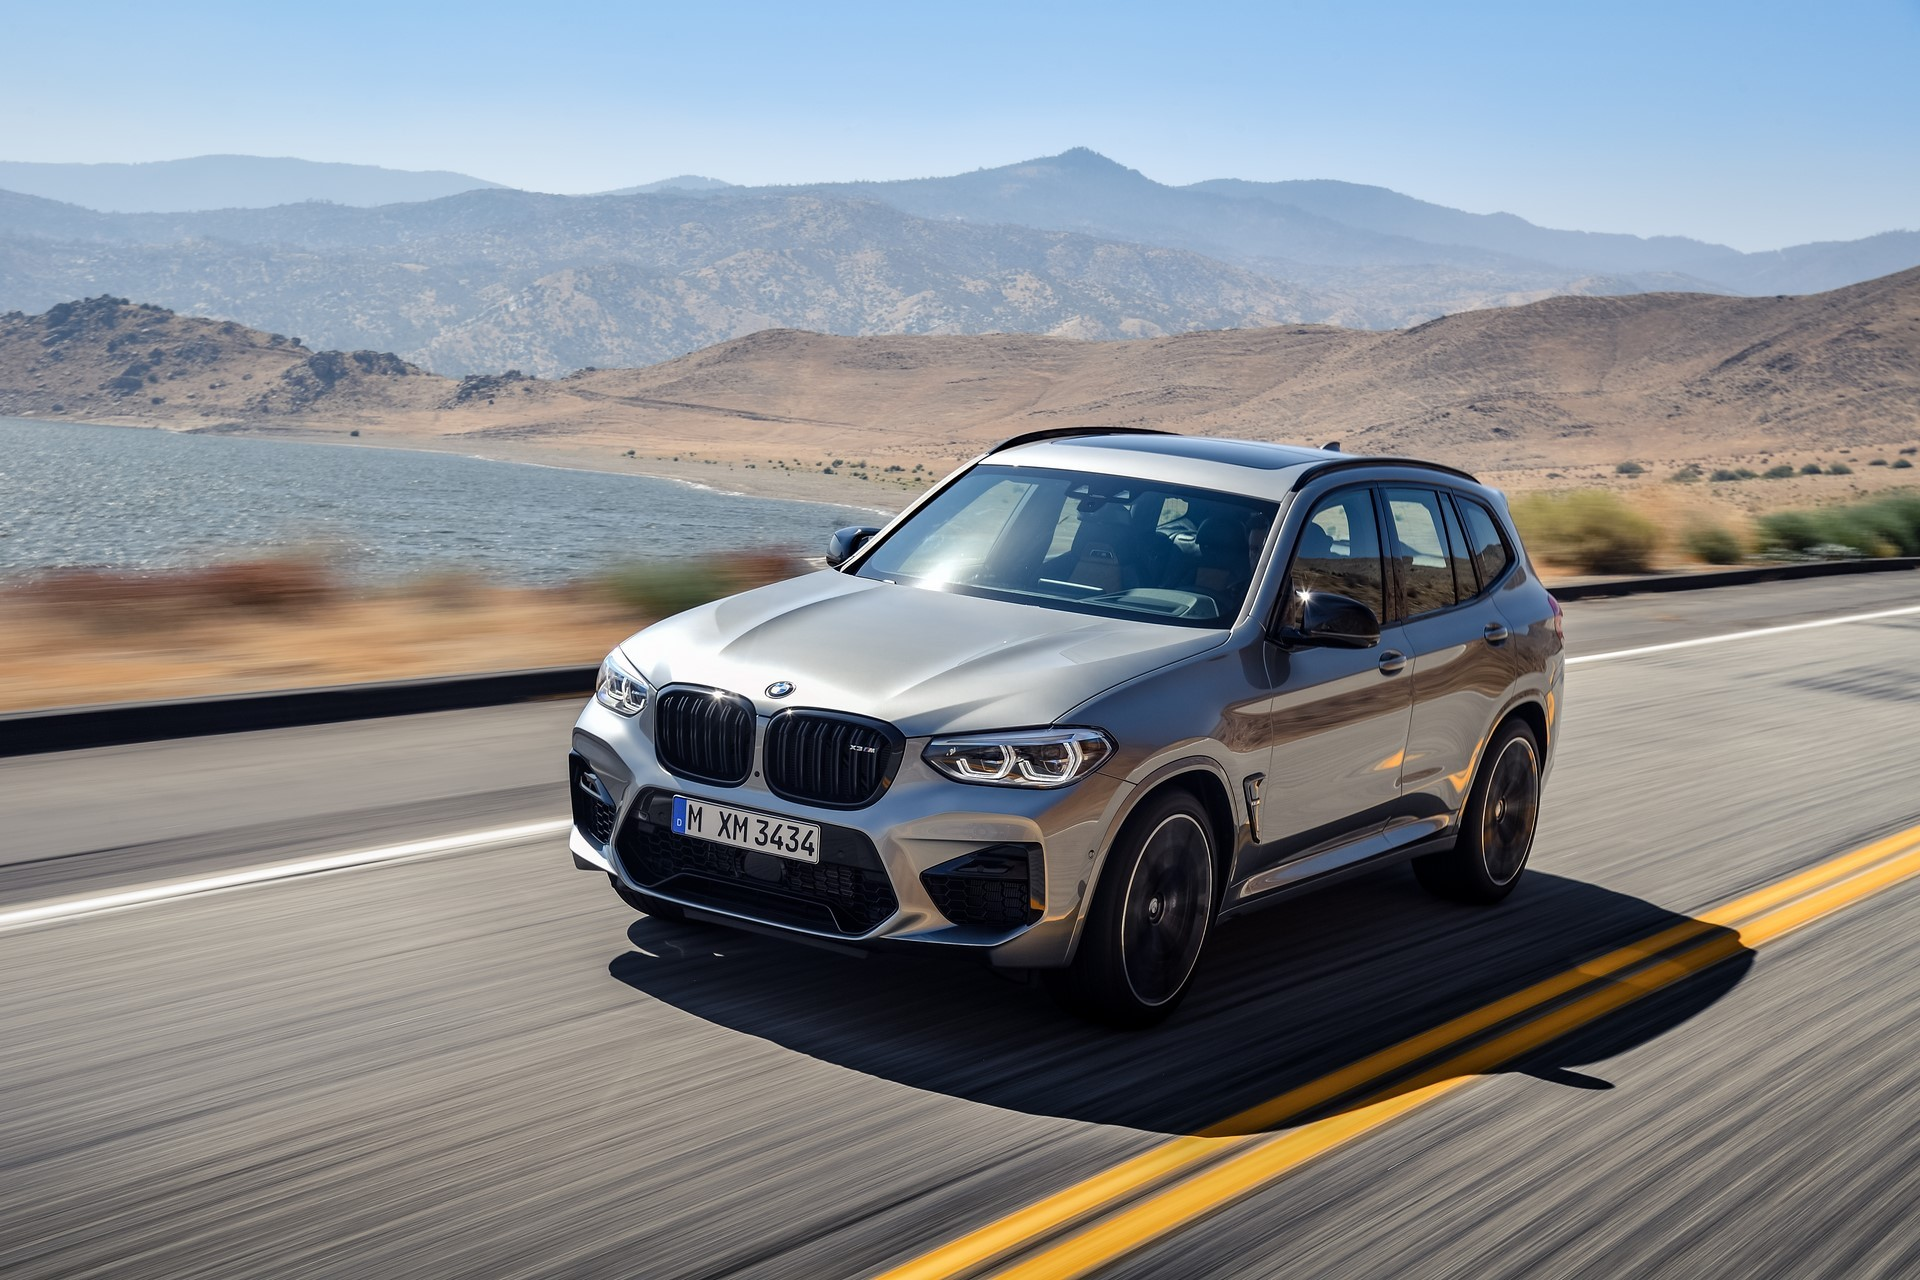 BMW X3 M and X4 M 2019 (27)